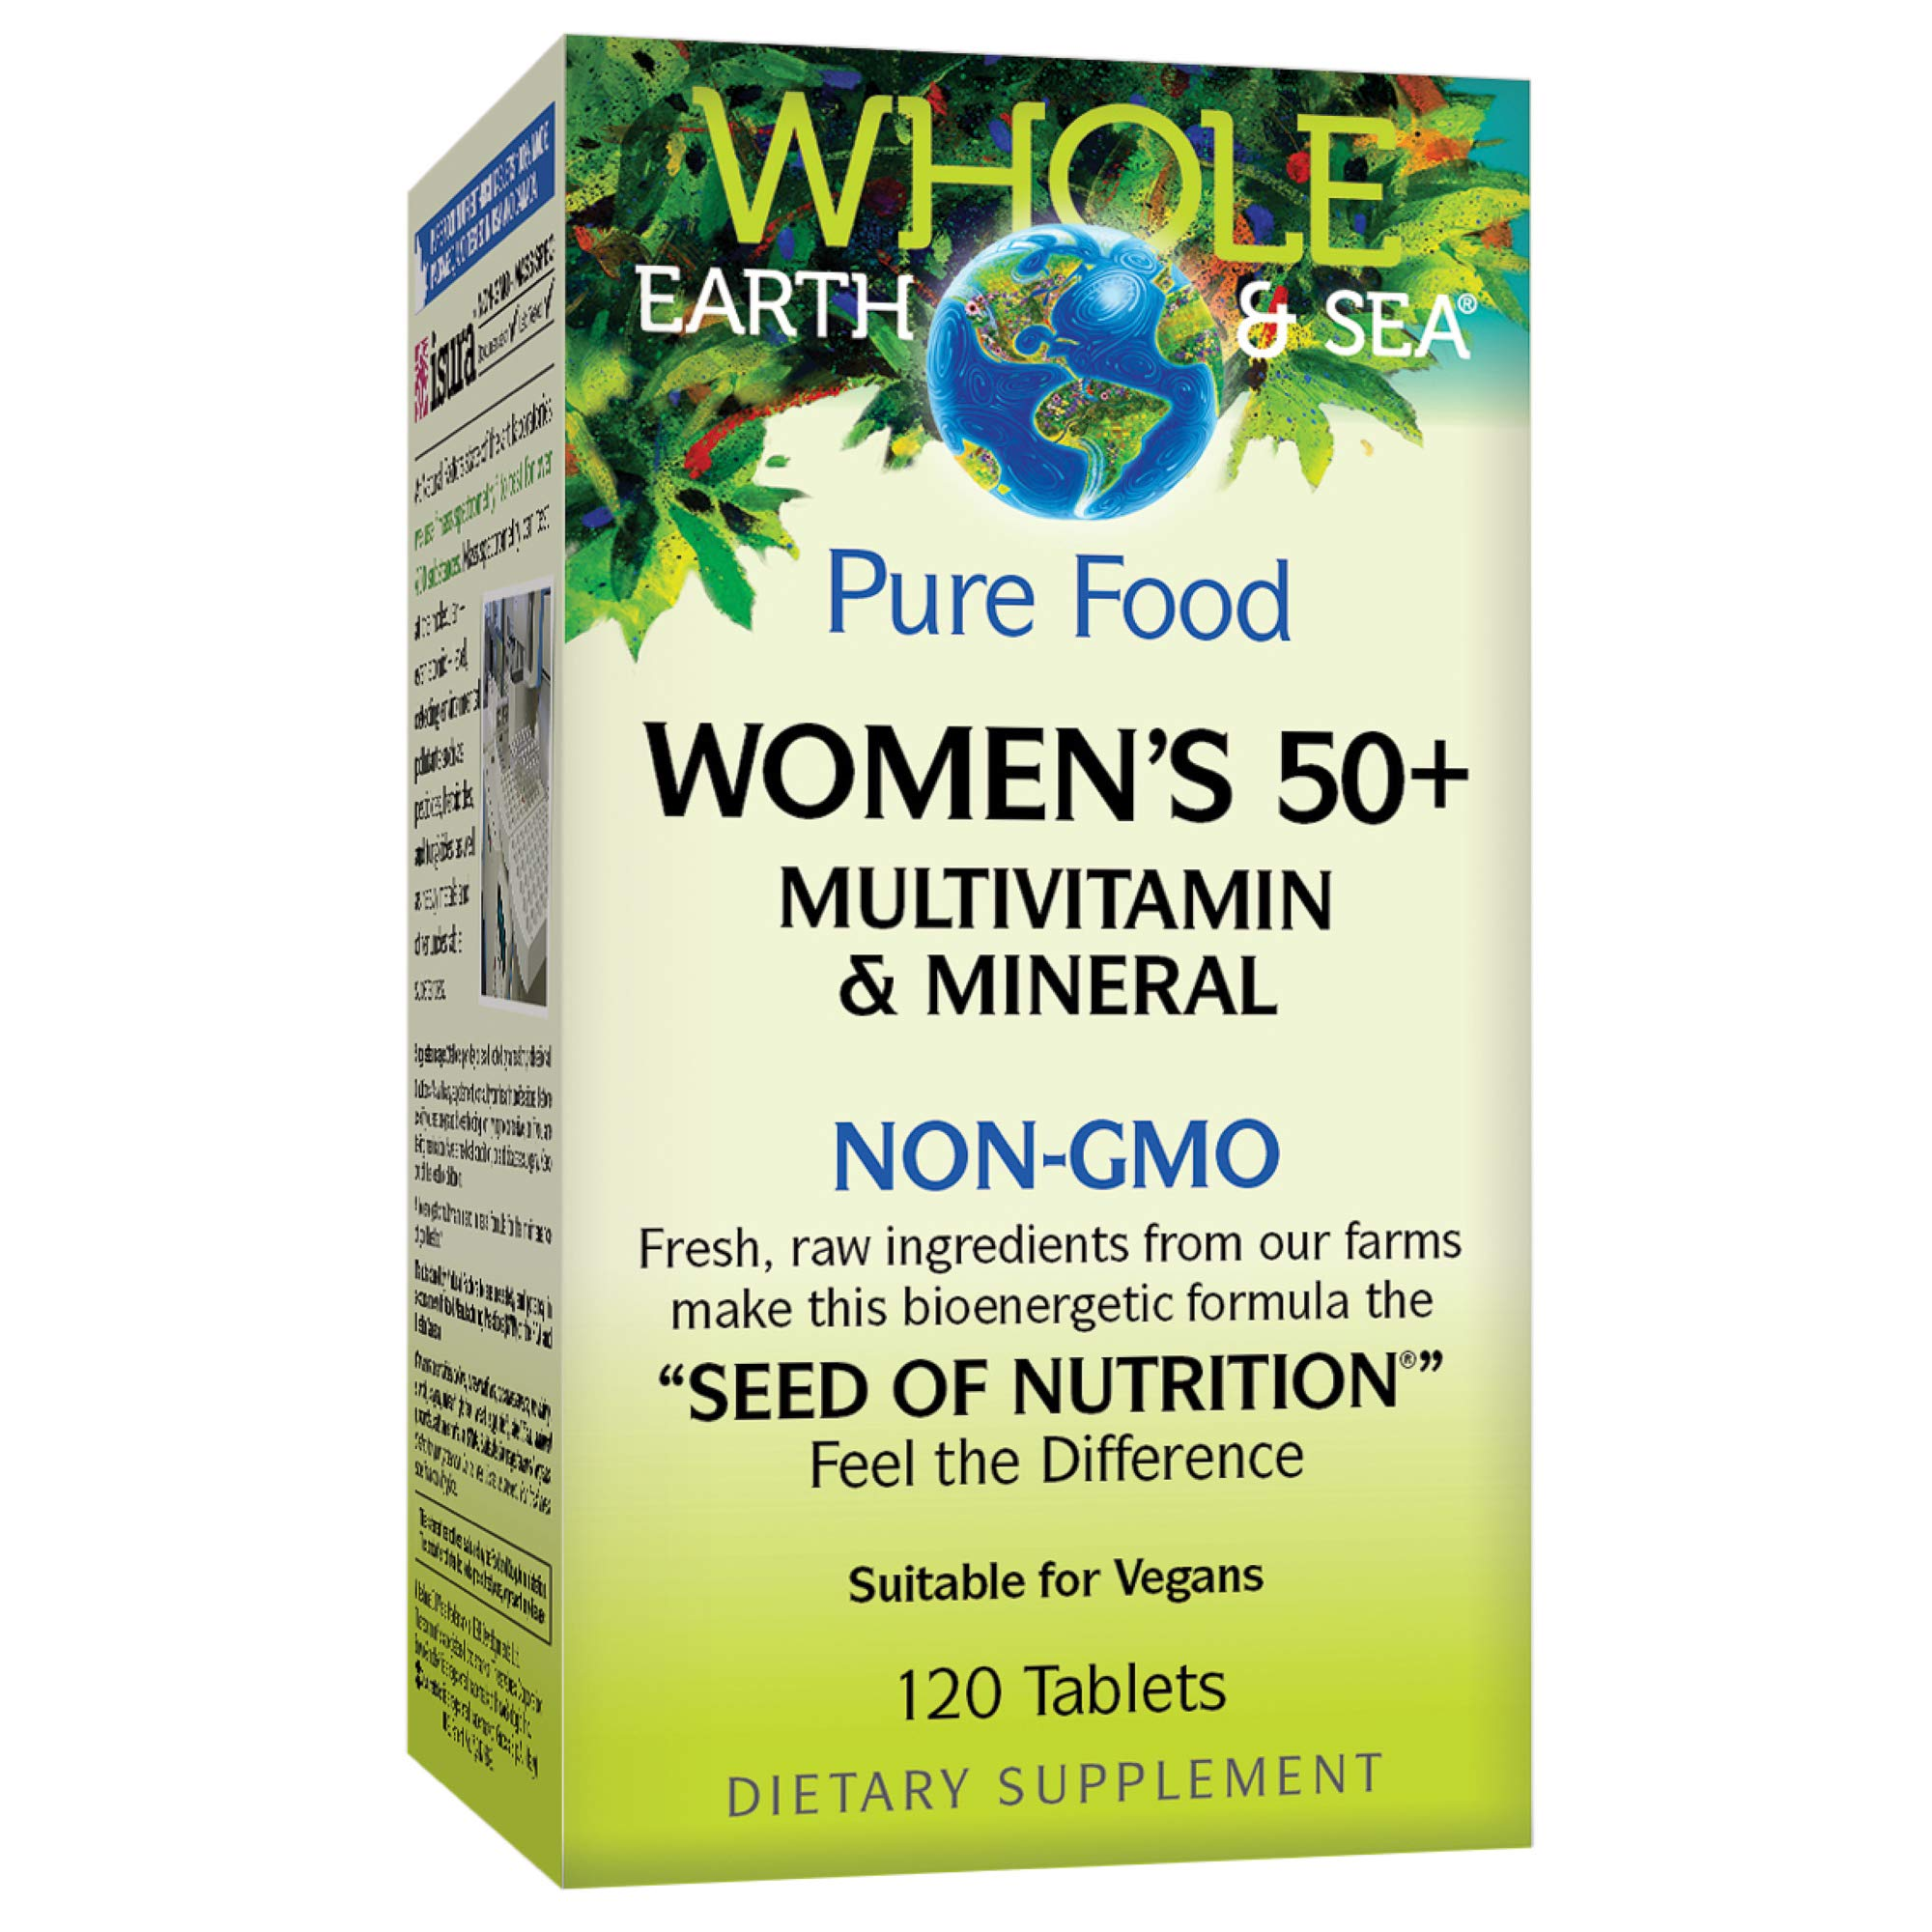 Whole Earth & Sea from Natural Factors, Women's 50+ Multivitamin & Mineral, Whole Food Supplement, Vegan and Gluten Free, 120 Tablets (60 Servings) by Natural Factors